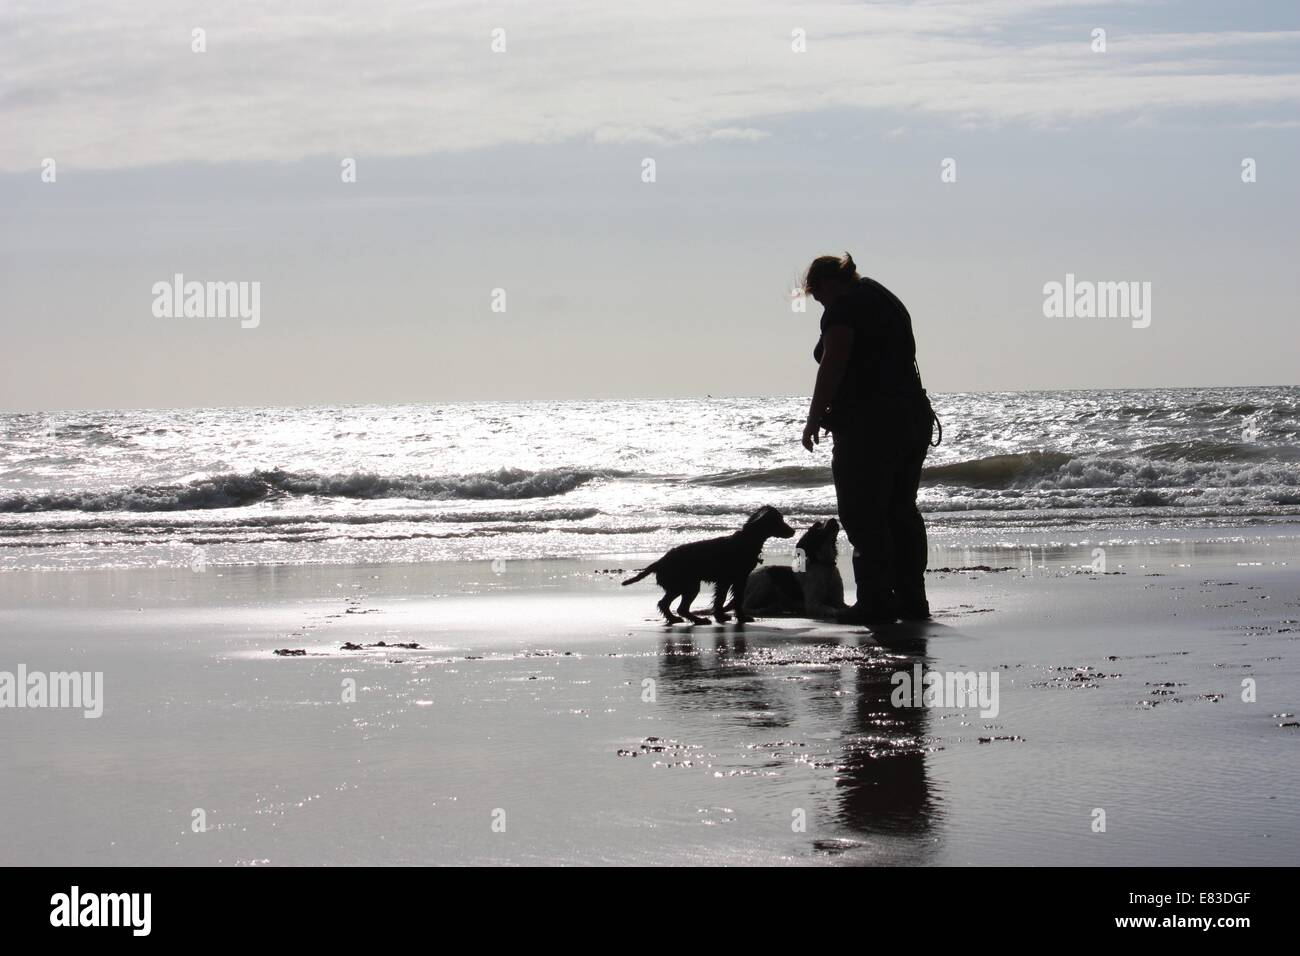 a person with two dogs on a glimmering sandy beach in sunshine - Stock Image